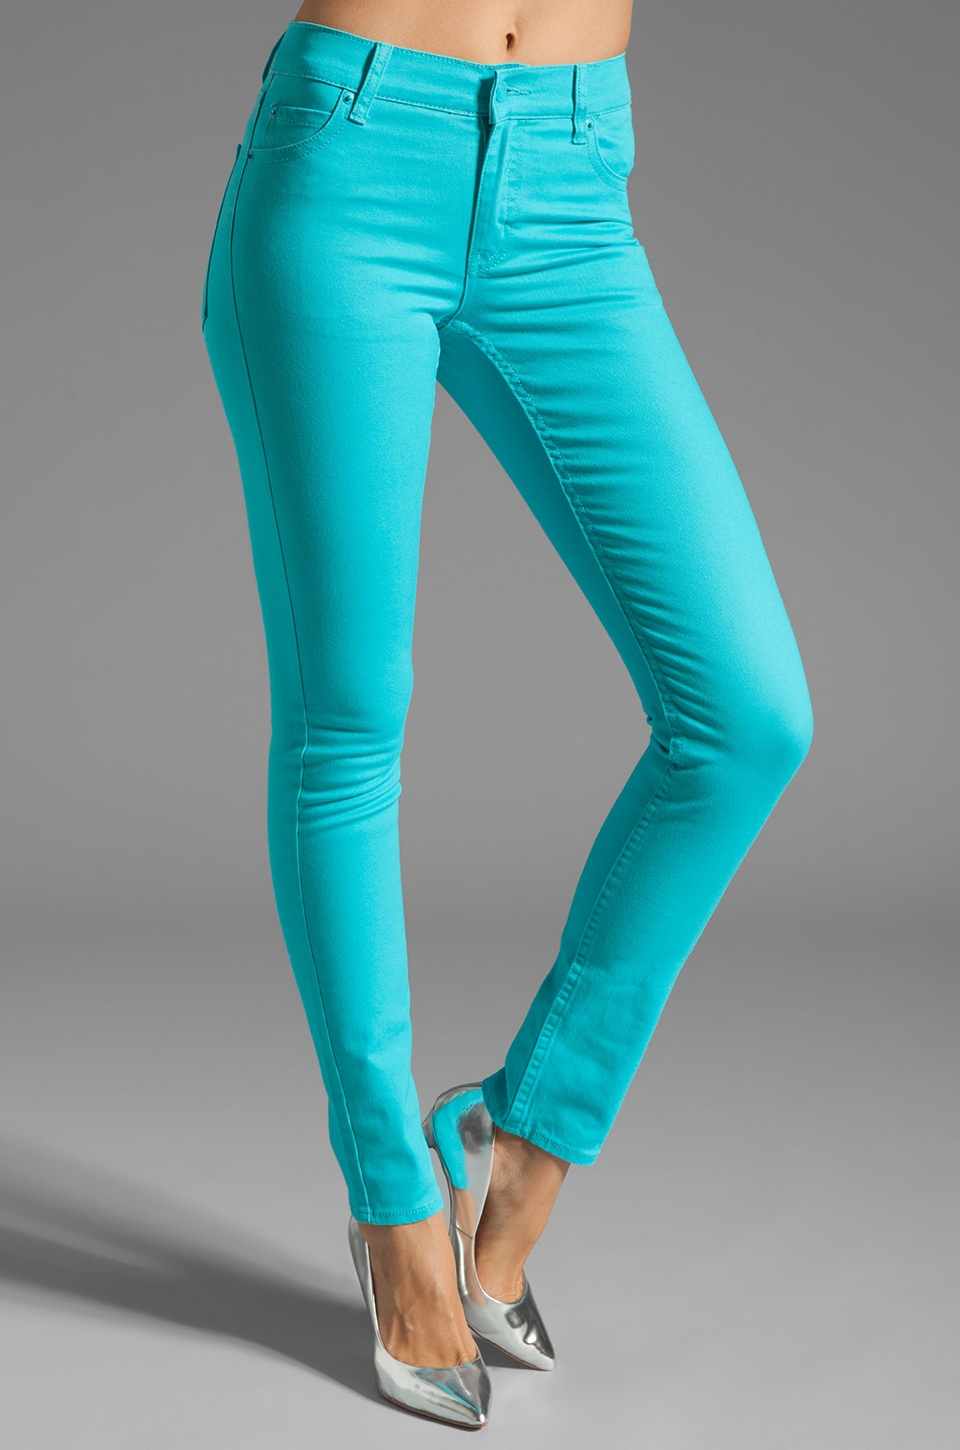 Cheap Monday Tight in Riviera Turquoise